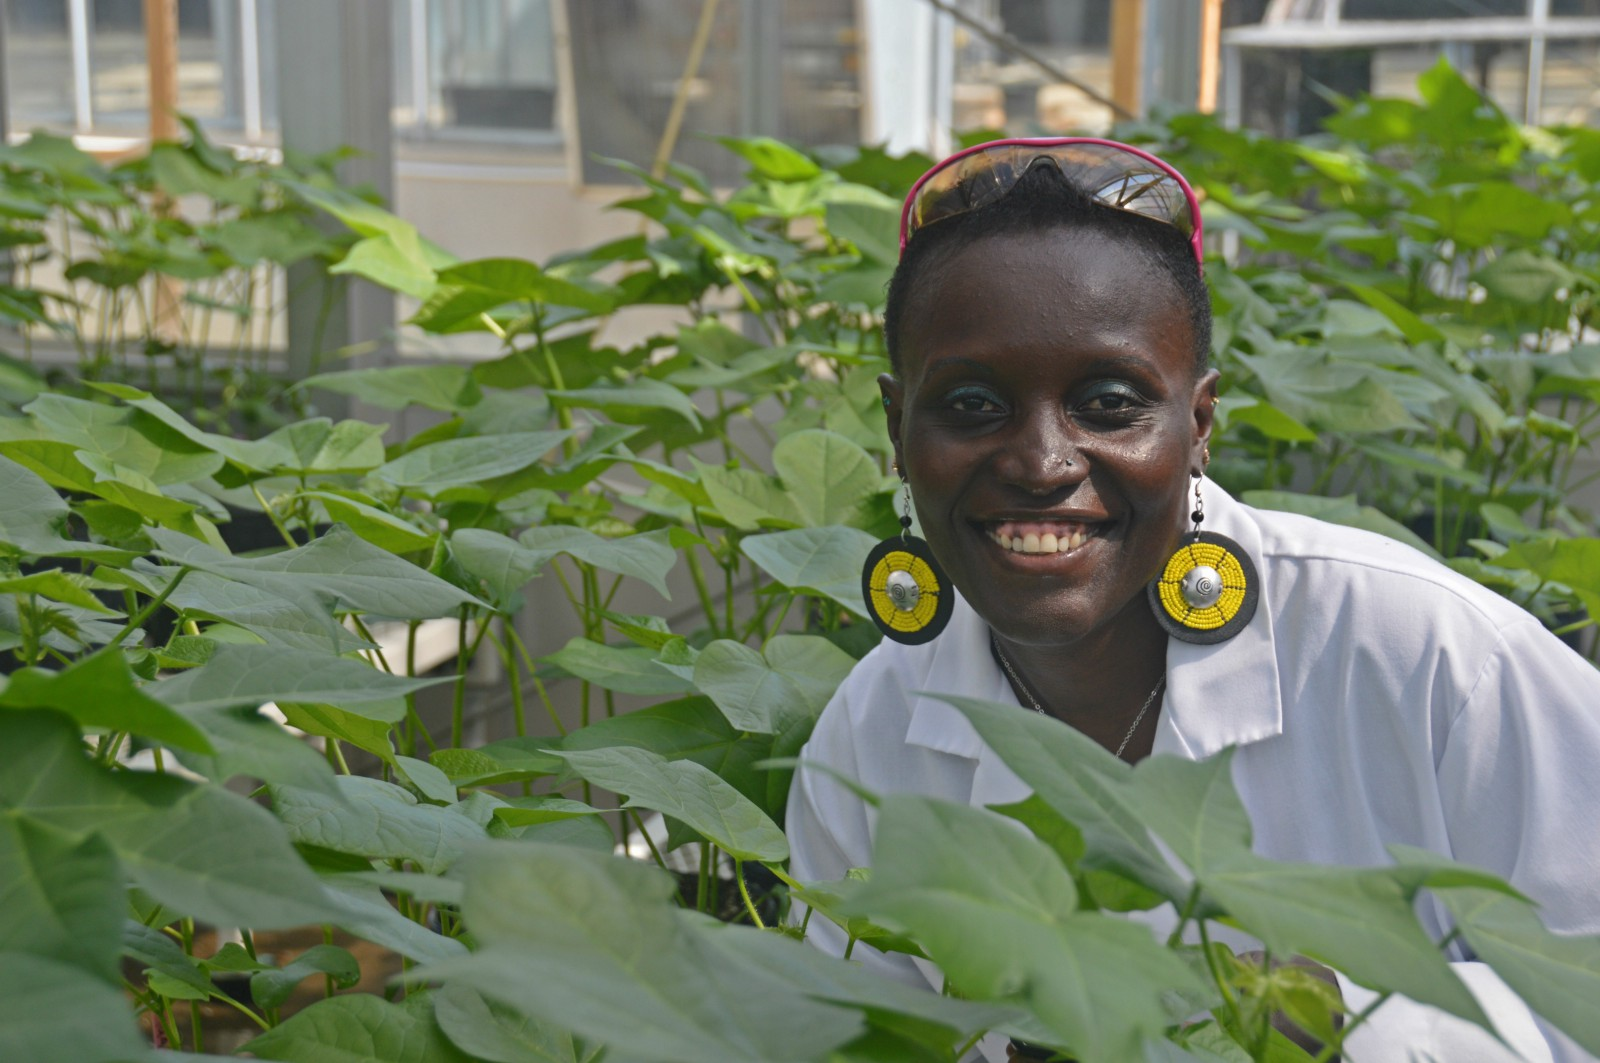 Esther Ngumbi at Auburn University Plant Center Research Center — (picture taken by Dr.Joseph Kloepper).